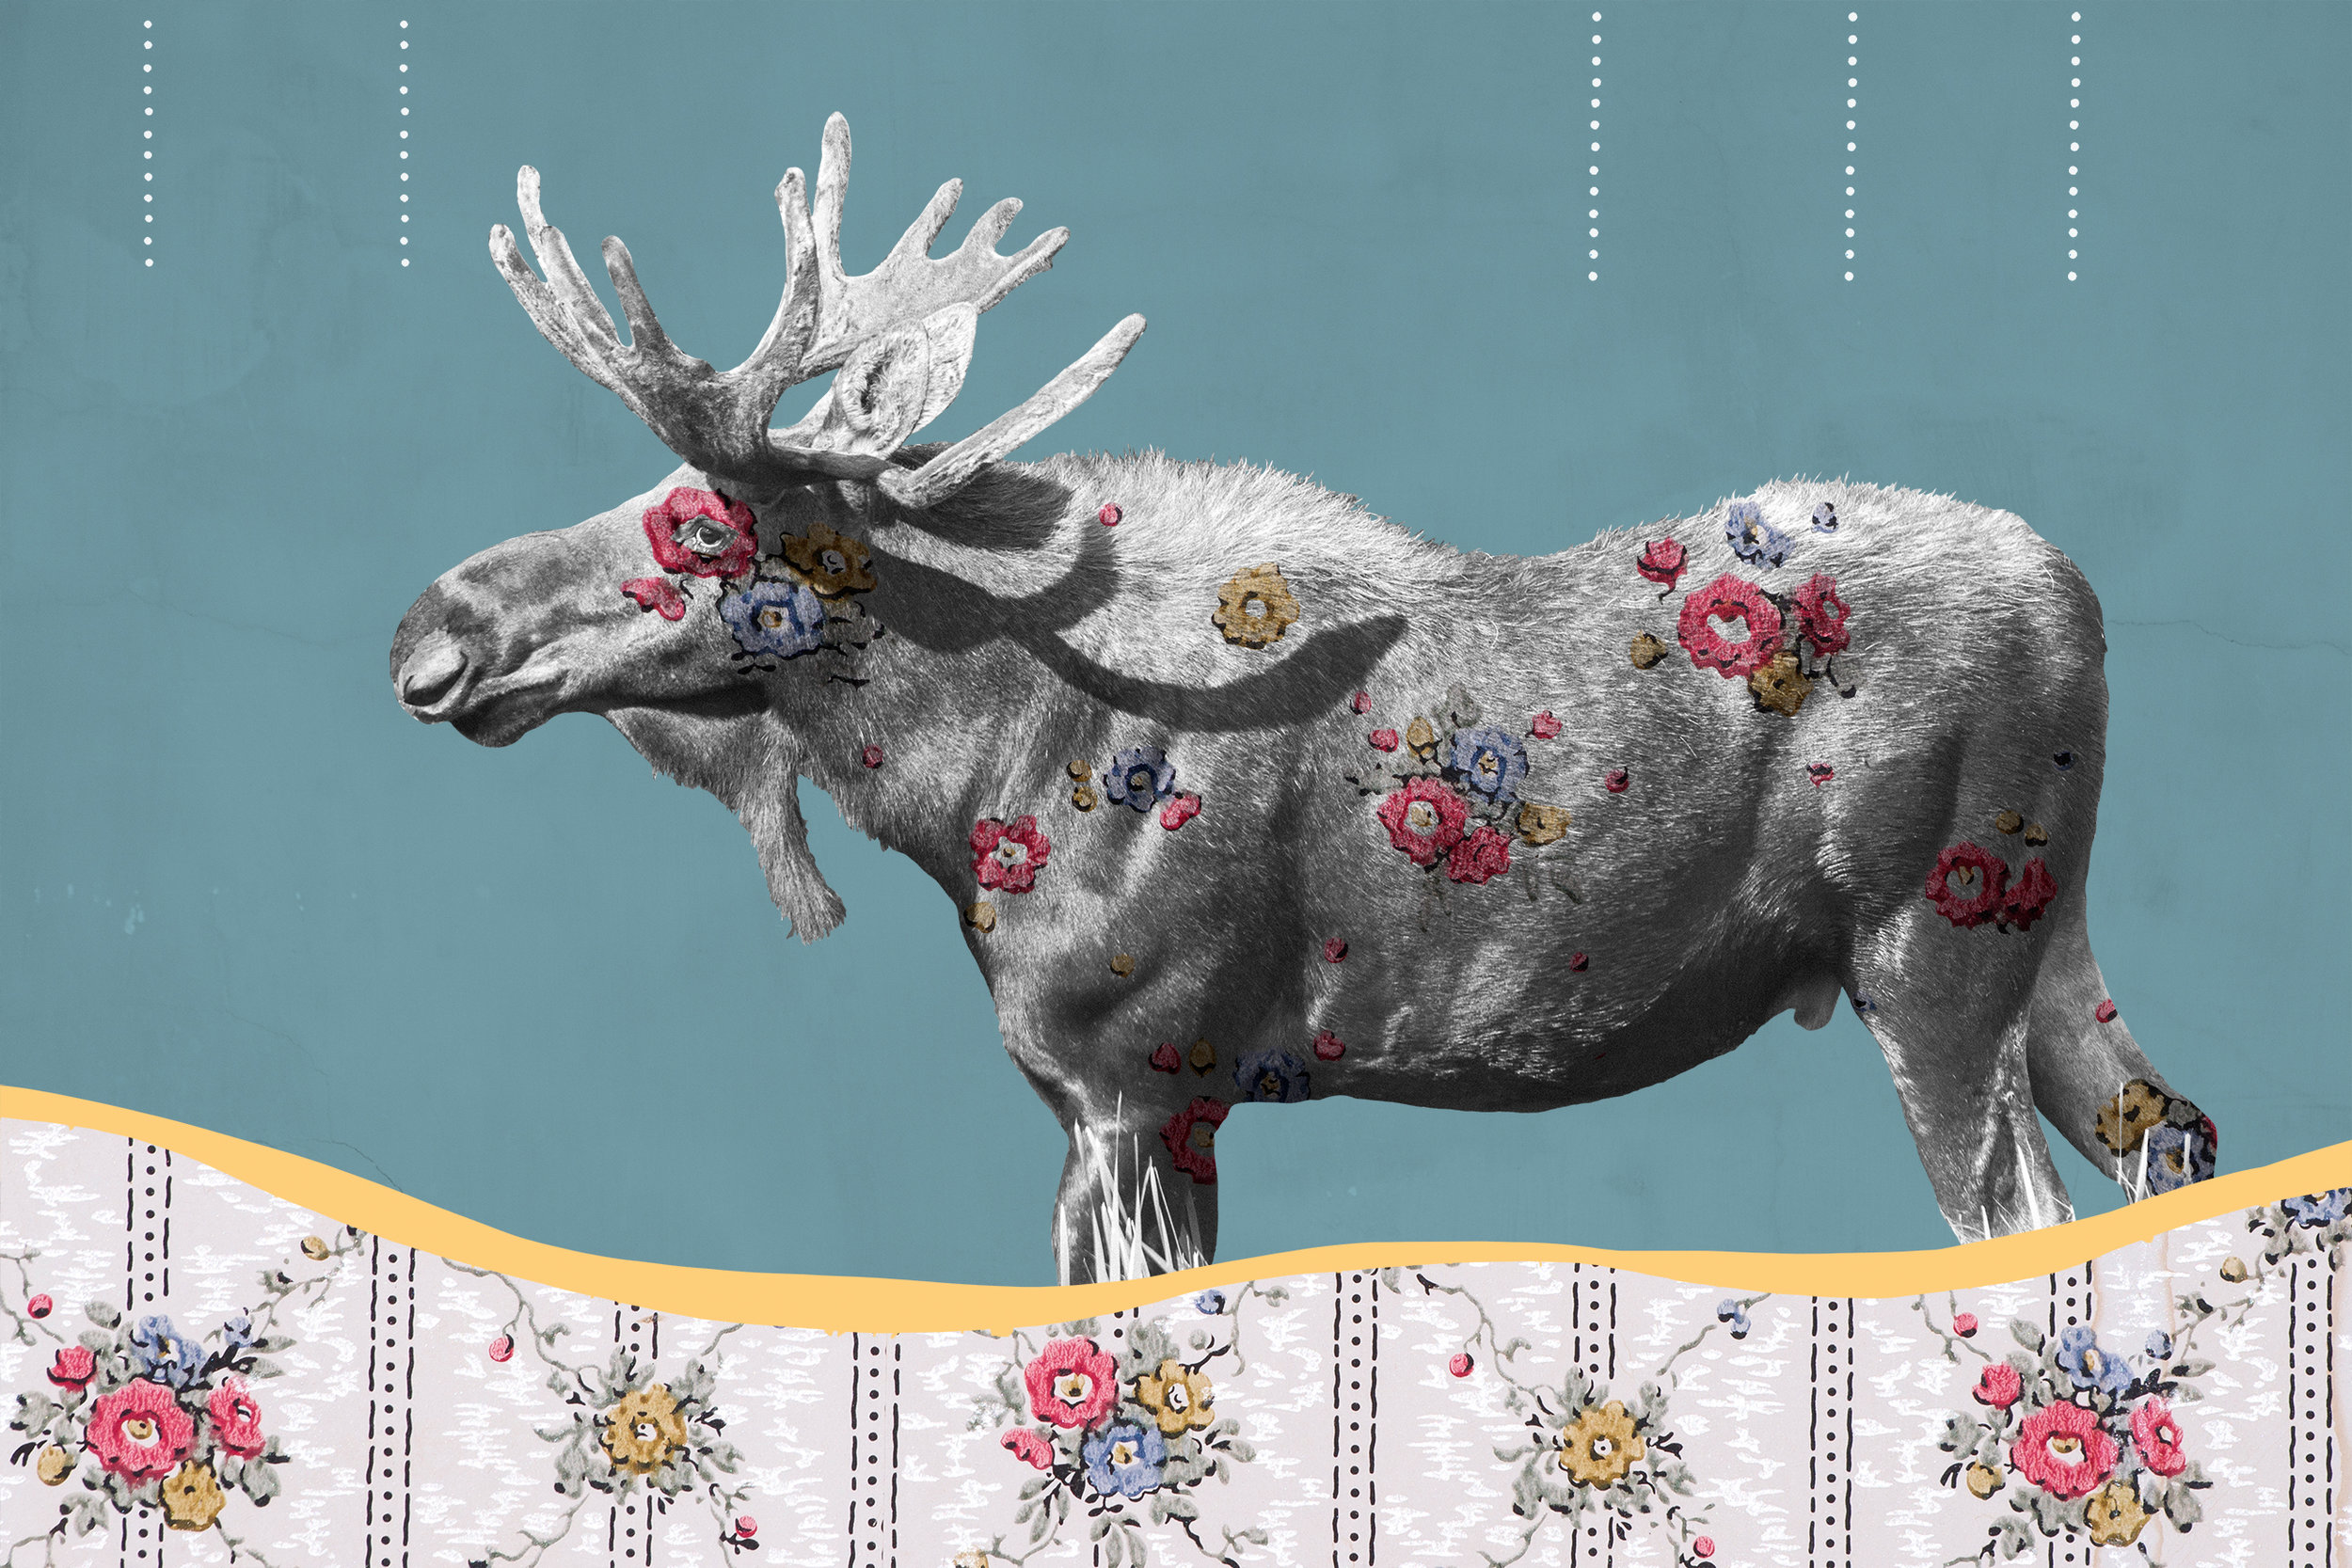 """{ Moose No. 2 }  I photographed moose in Montana's Madison Valley. This vintage wallpaper I photographed in the Daly Mansion in the Bitterroot Valley of Montana. The mansion served as the summer residence of Margaret Daly, widow to """"Copper King"""" Marcus Daly. The mansion was completed in 1910 and this wallpaper is original to that period."""